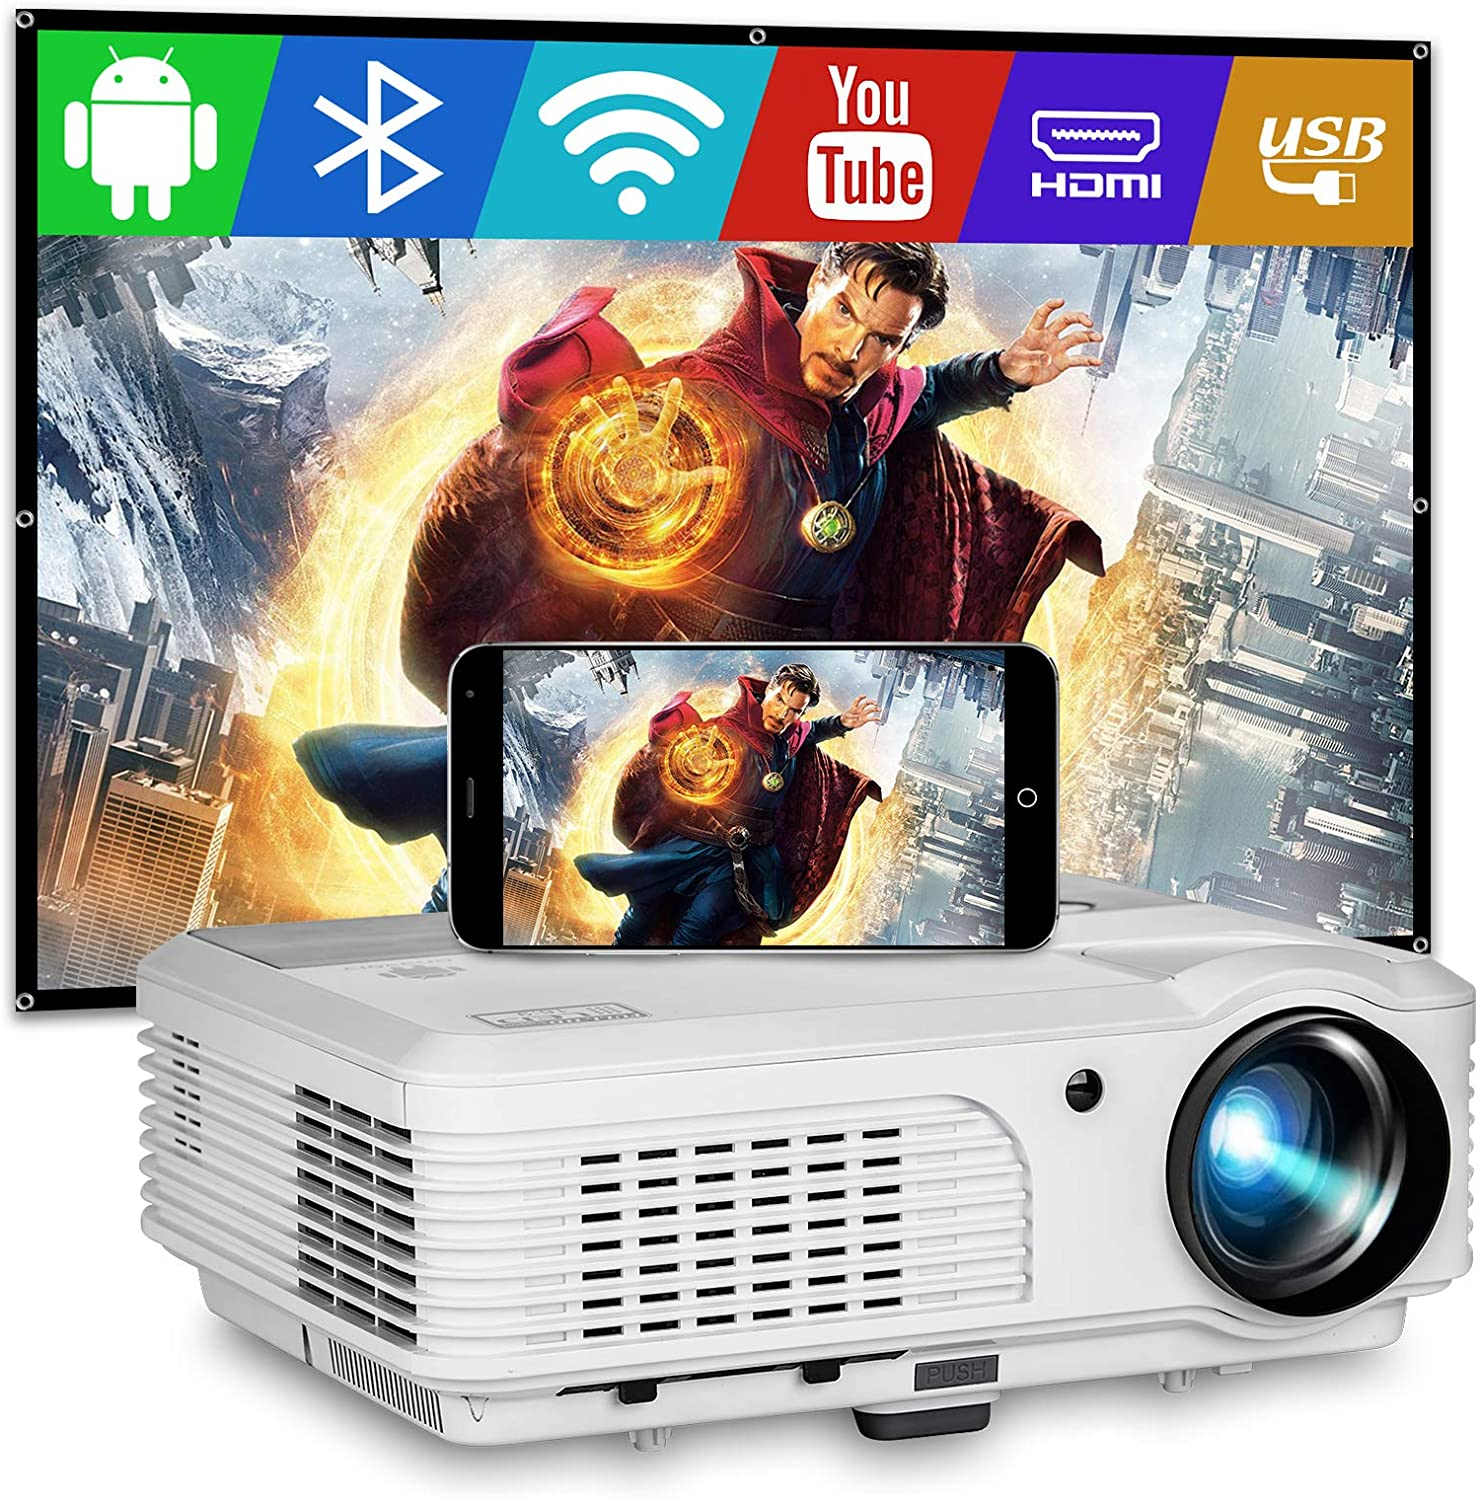 EUG Wireless WiFi Projector LED 4400 Lumen Multimedia Home Theater Video Projectors with Bluetooth Android HDMI USB Compatible with Full Hd 1080P Wireless Smartphone DVD TV Stick Games Outdoor Movies